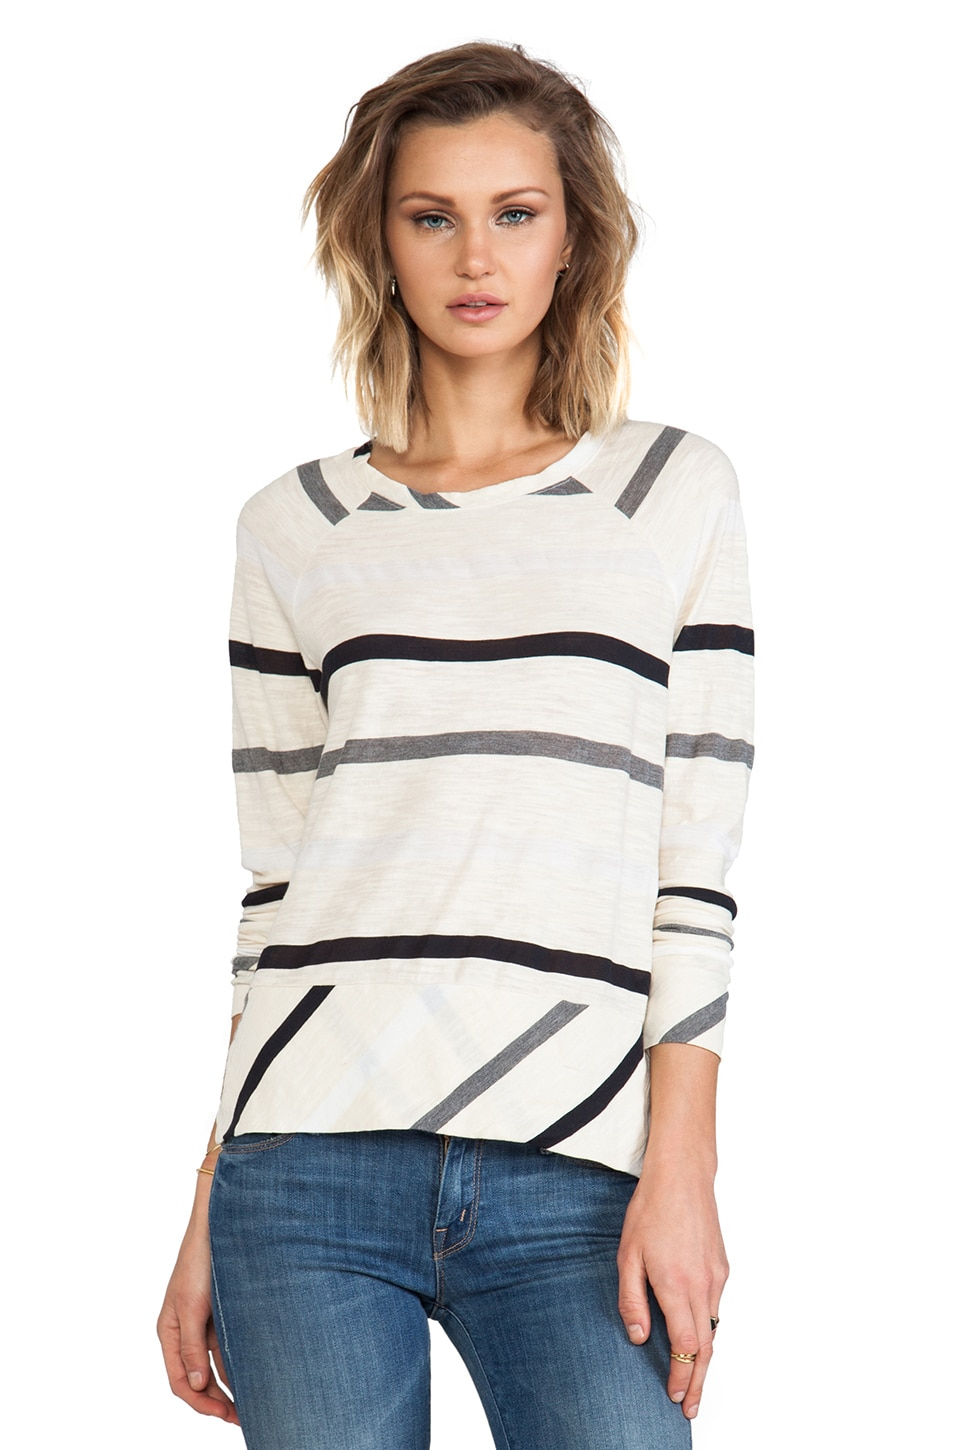 Michael Stars Long Sleeve Raglan Sweatshirt in Vanilla